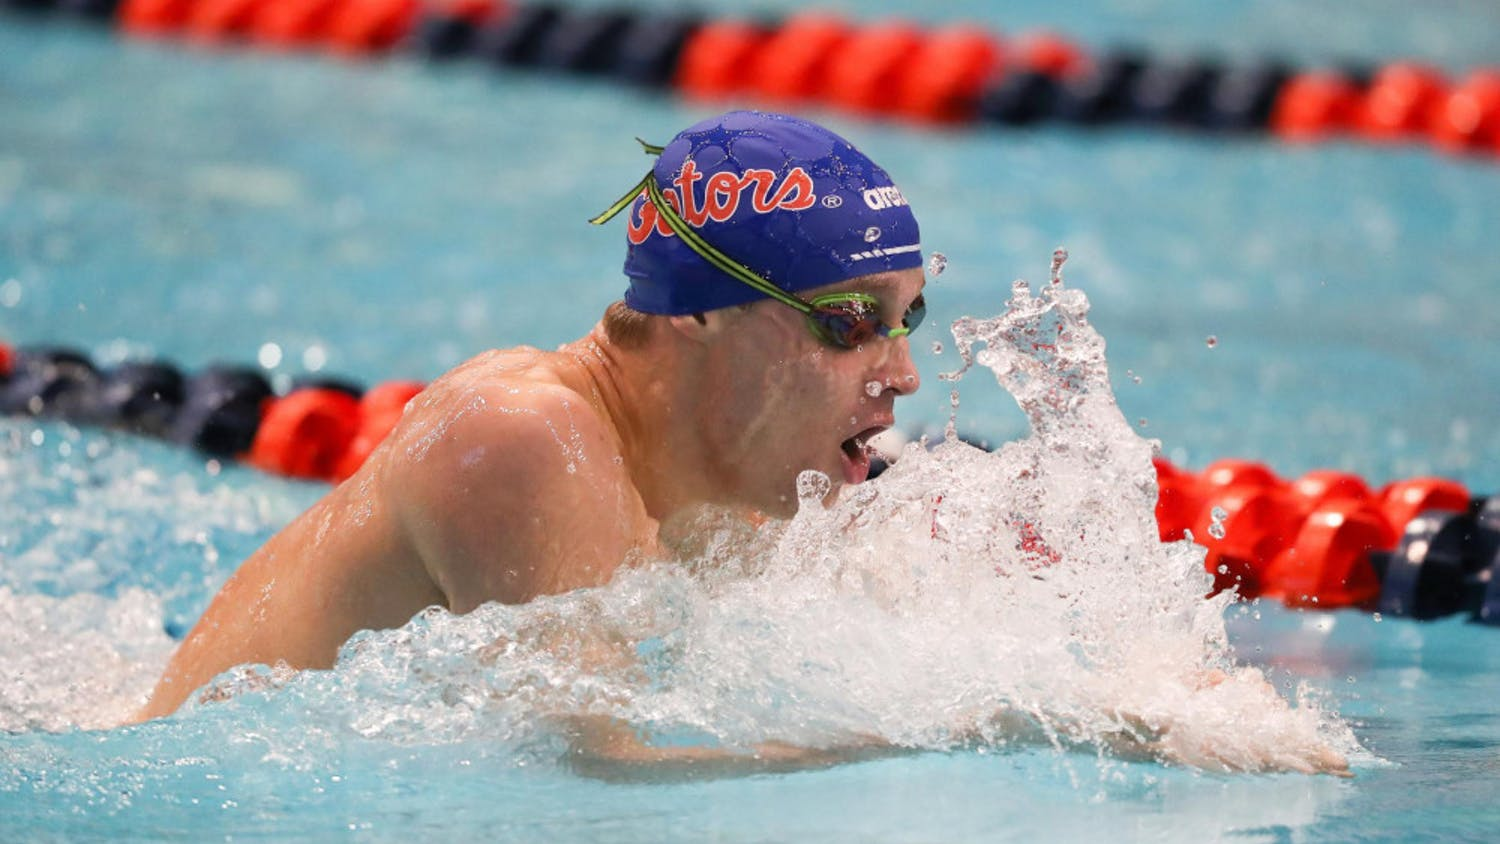 Robert Finke during the Gators' meet on Day 3 of the SEC Championships on Thursday, February 20, 2020 at Martin Aquatics Center in Auburn, Alabama. Finke and other Gators return to Auburn for an invitational this week.